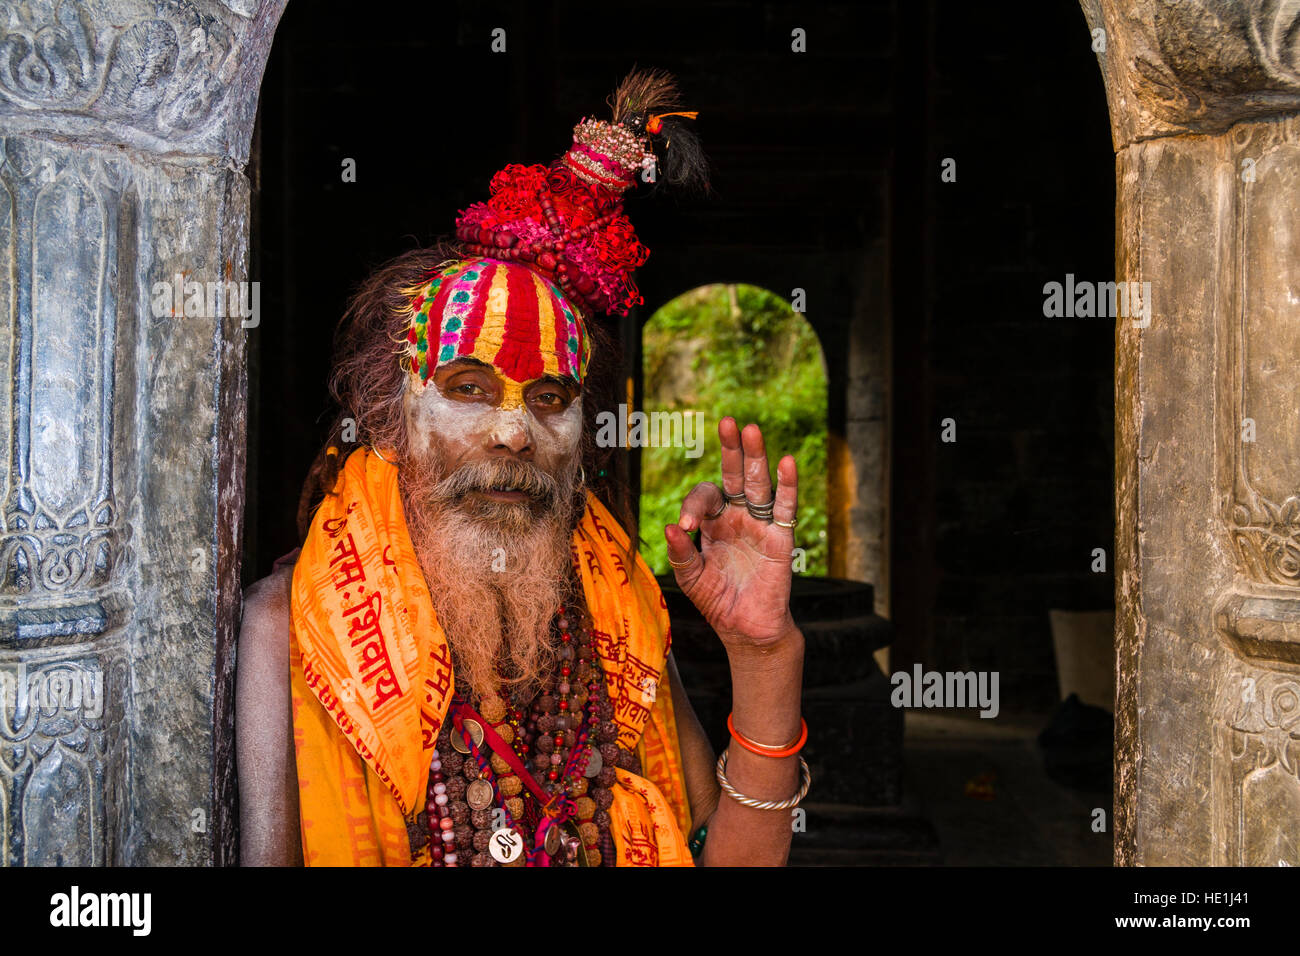 Portait of a Sadhu, holy man, sitting at a little shrine at Pashupatinath temple at the banks of Bagmati River Stock Photo